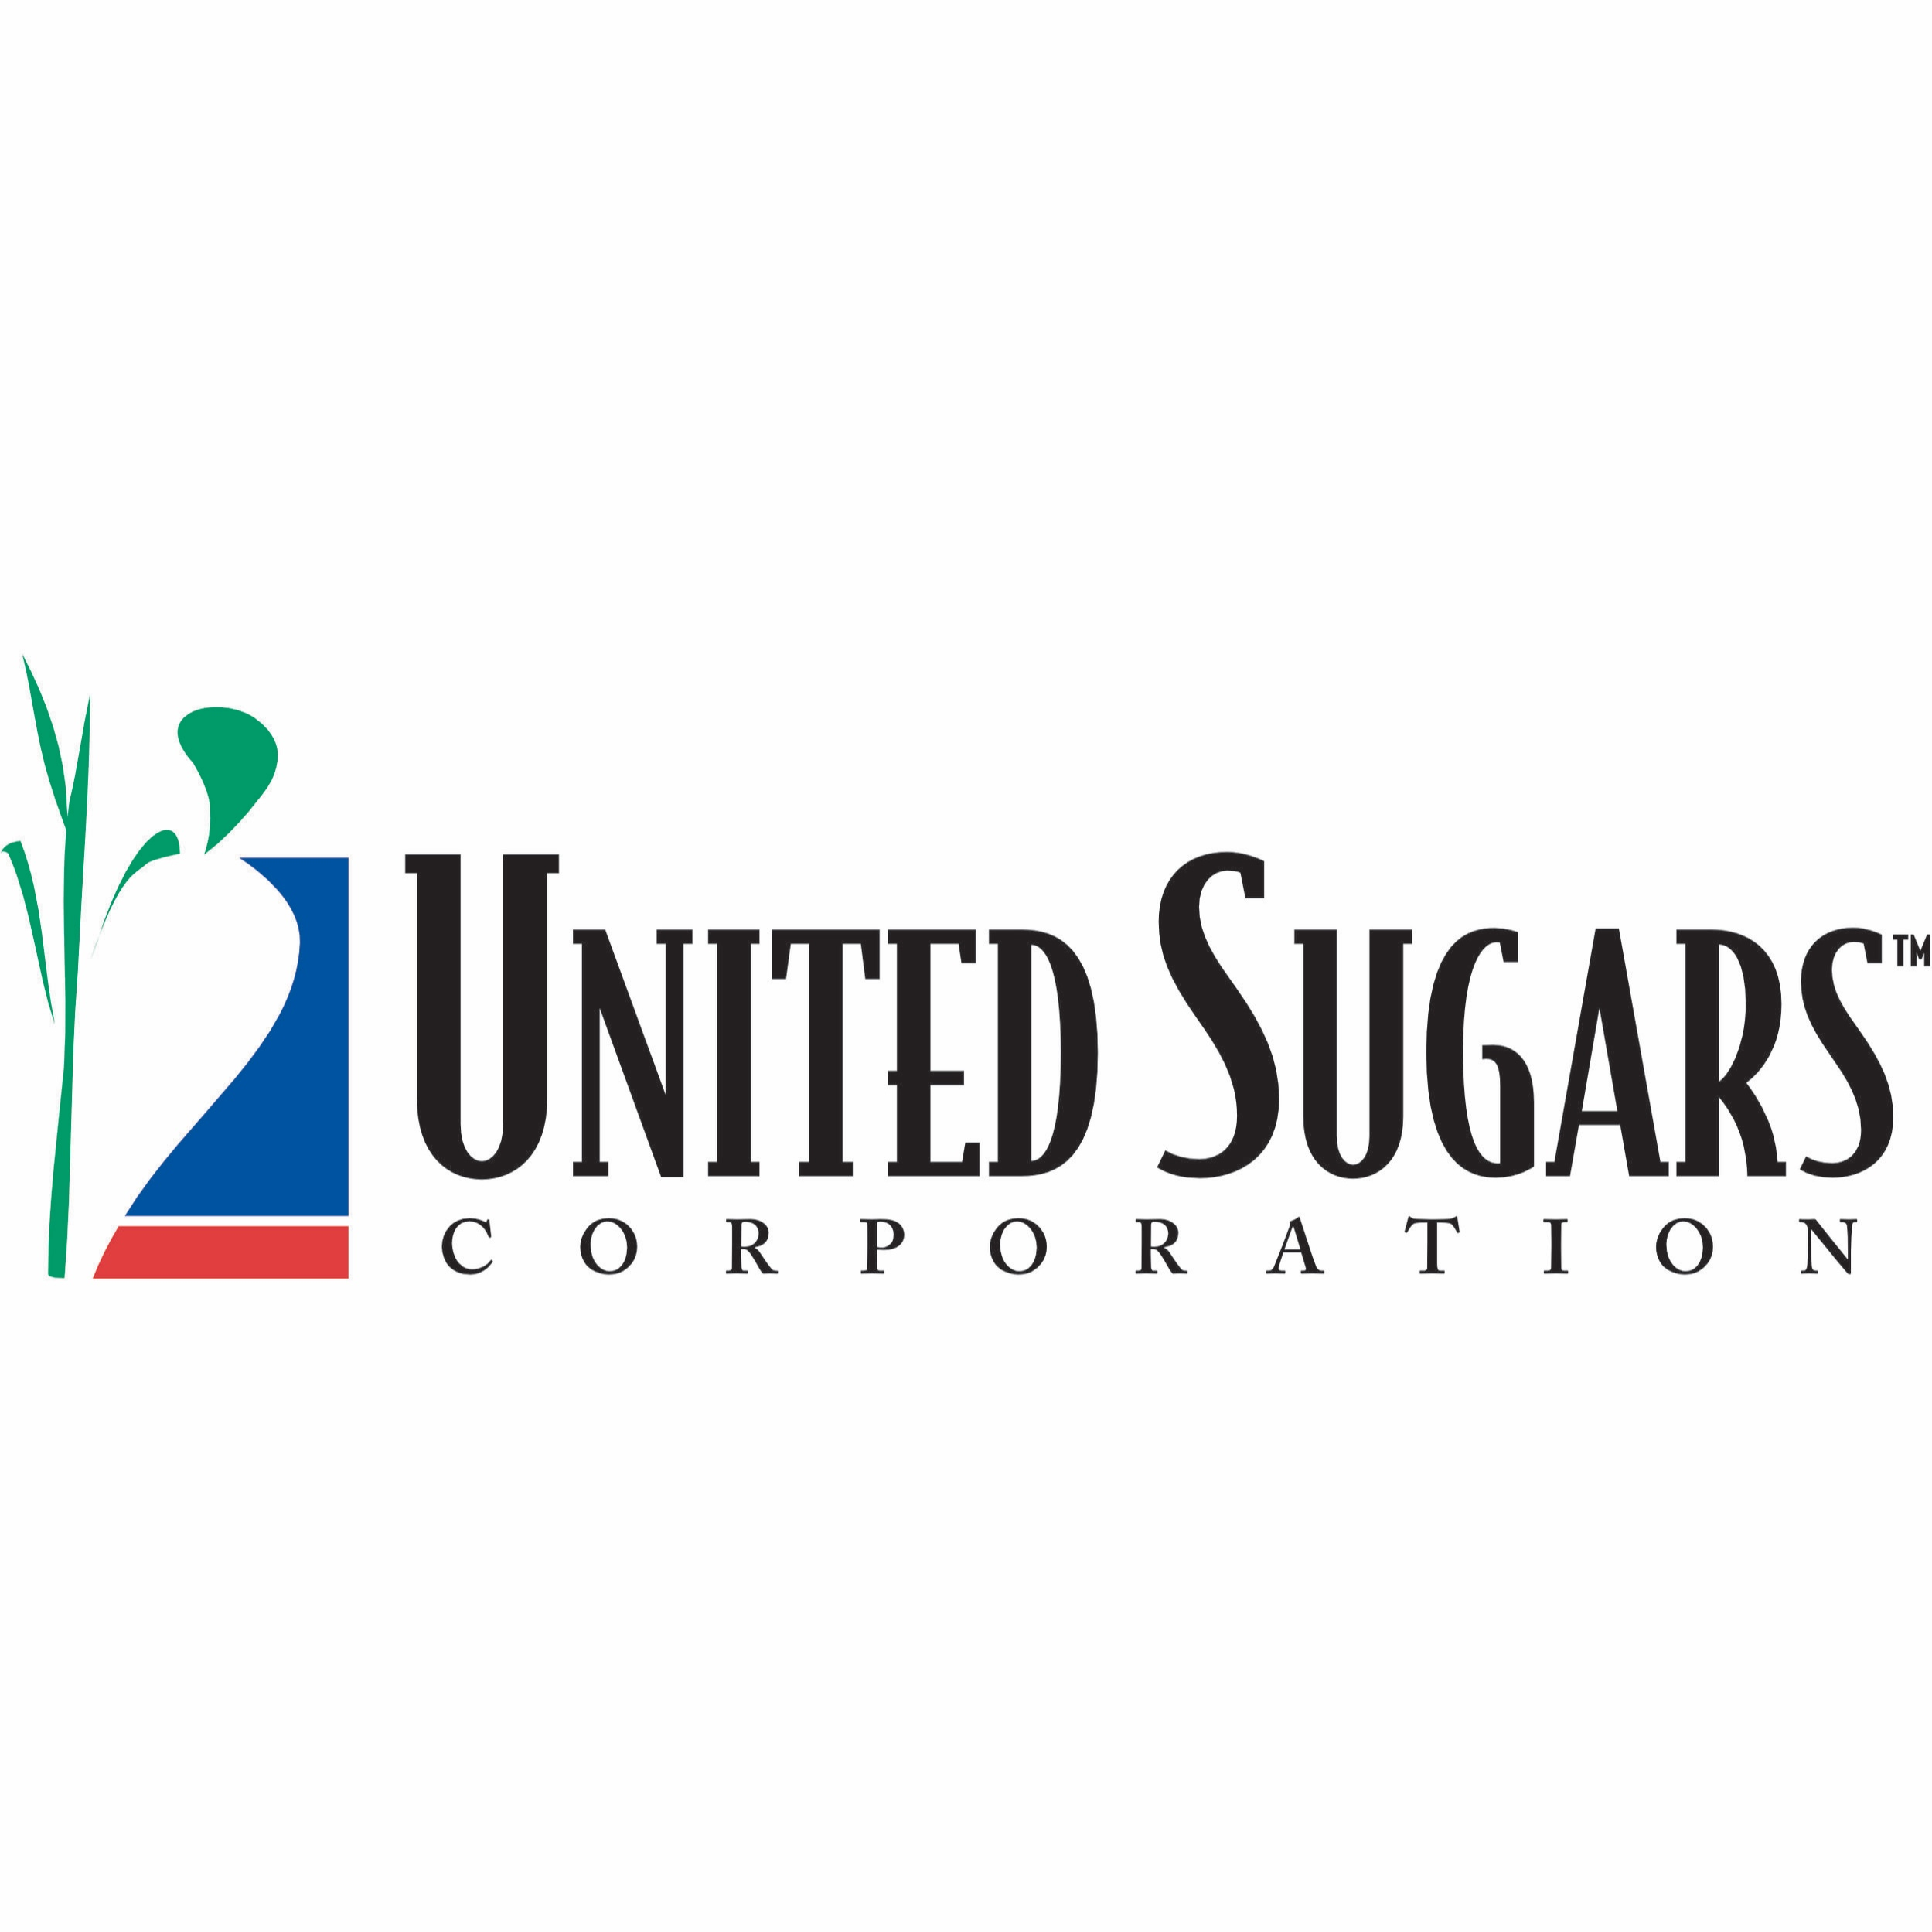 United+Sugars+eps+vector+format.jpg